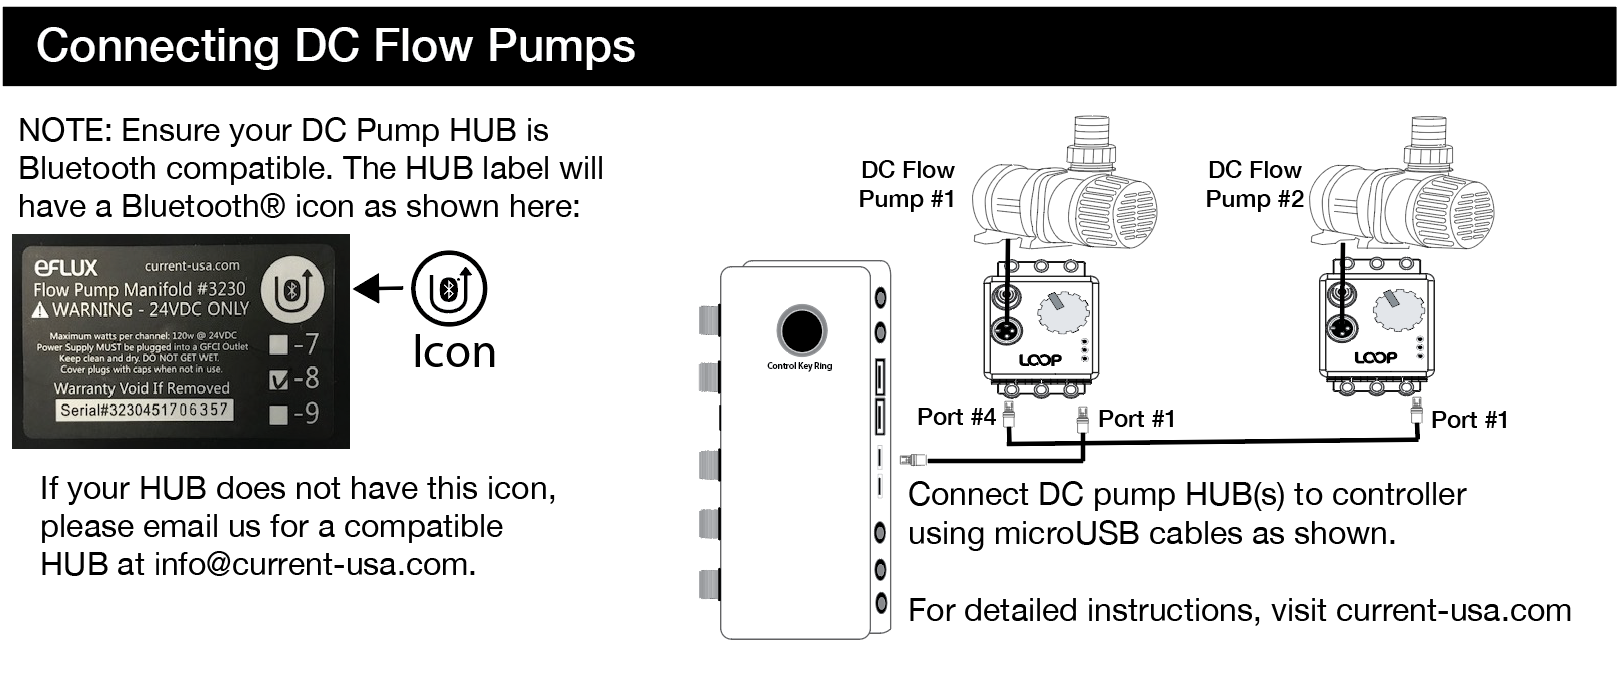 how do i connect my dc pumps to the loop bluetooth controller?